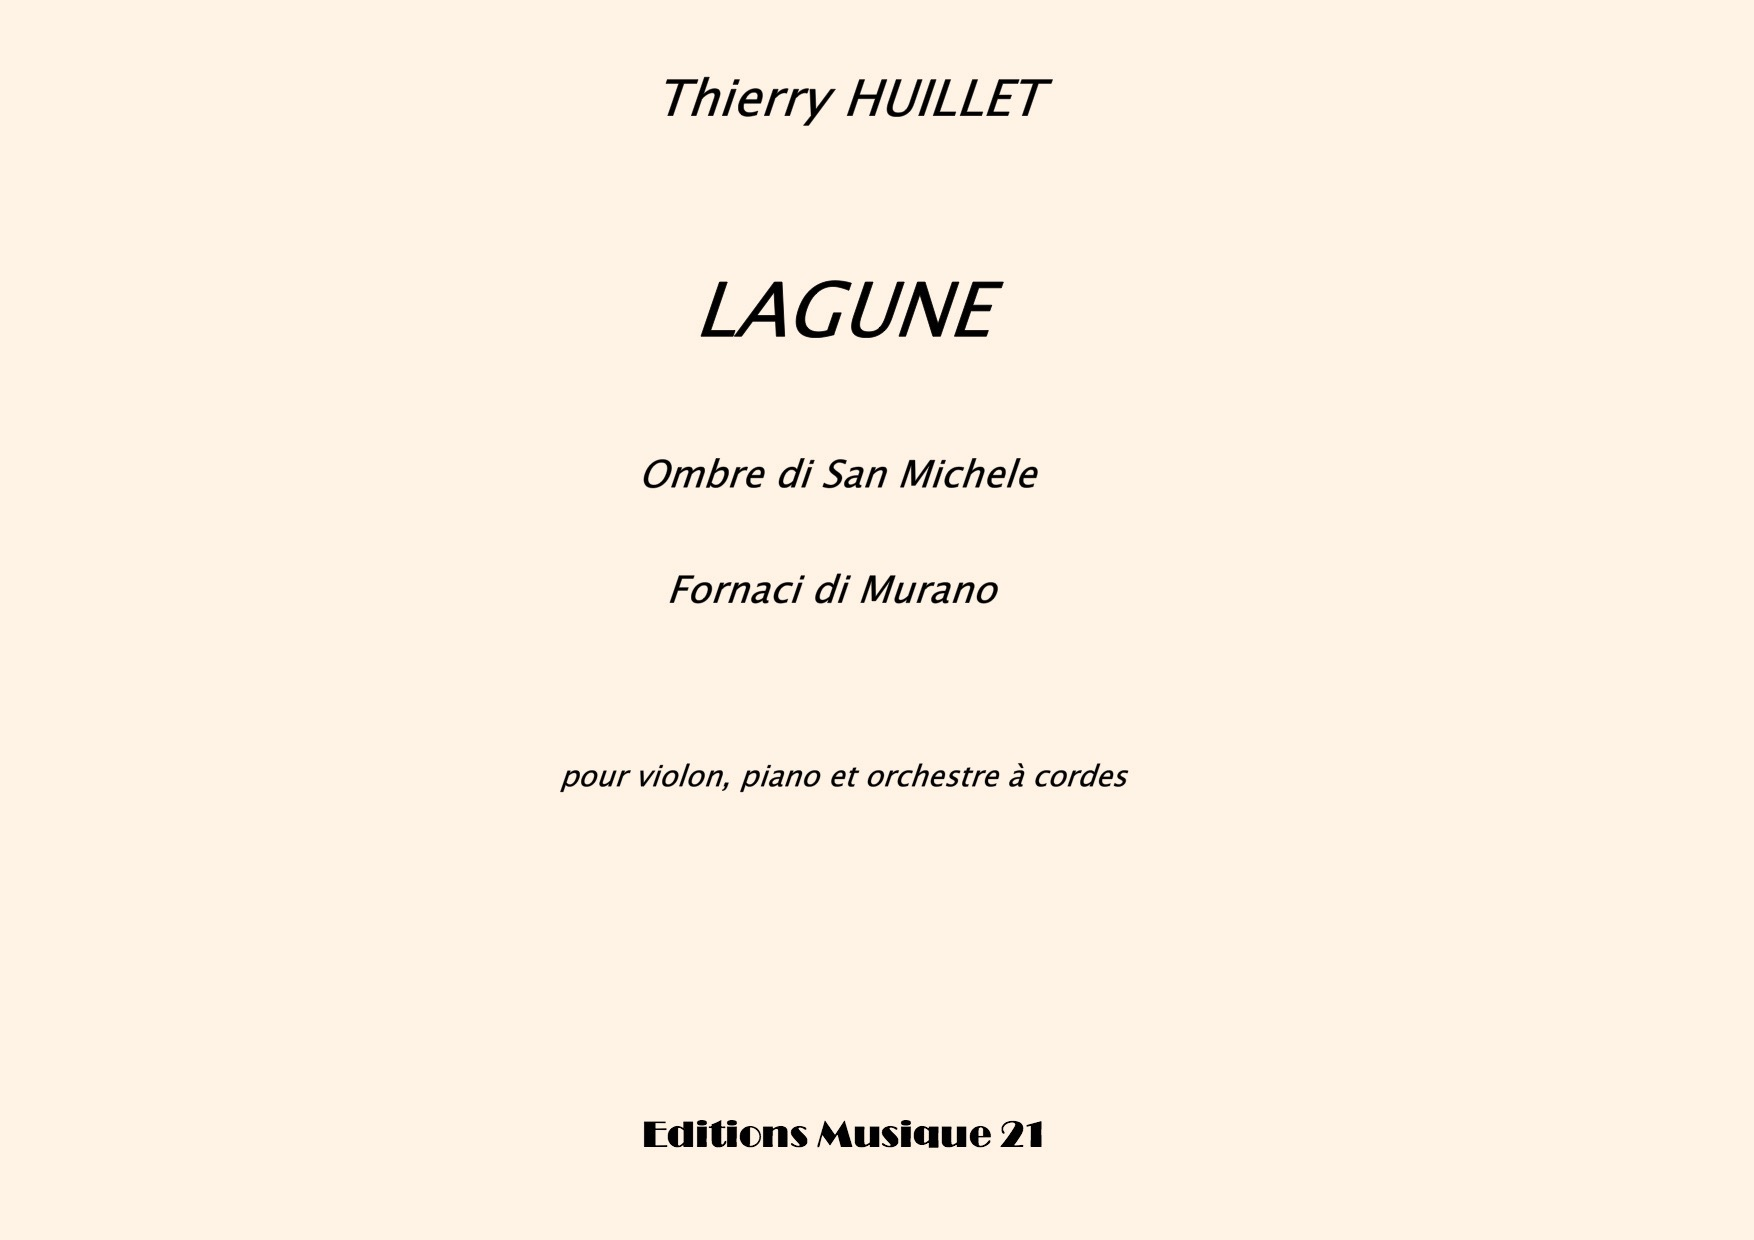 Thierry HUILLET – Lagune For Violin, Piano And String Orchestra